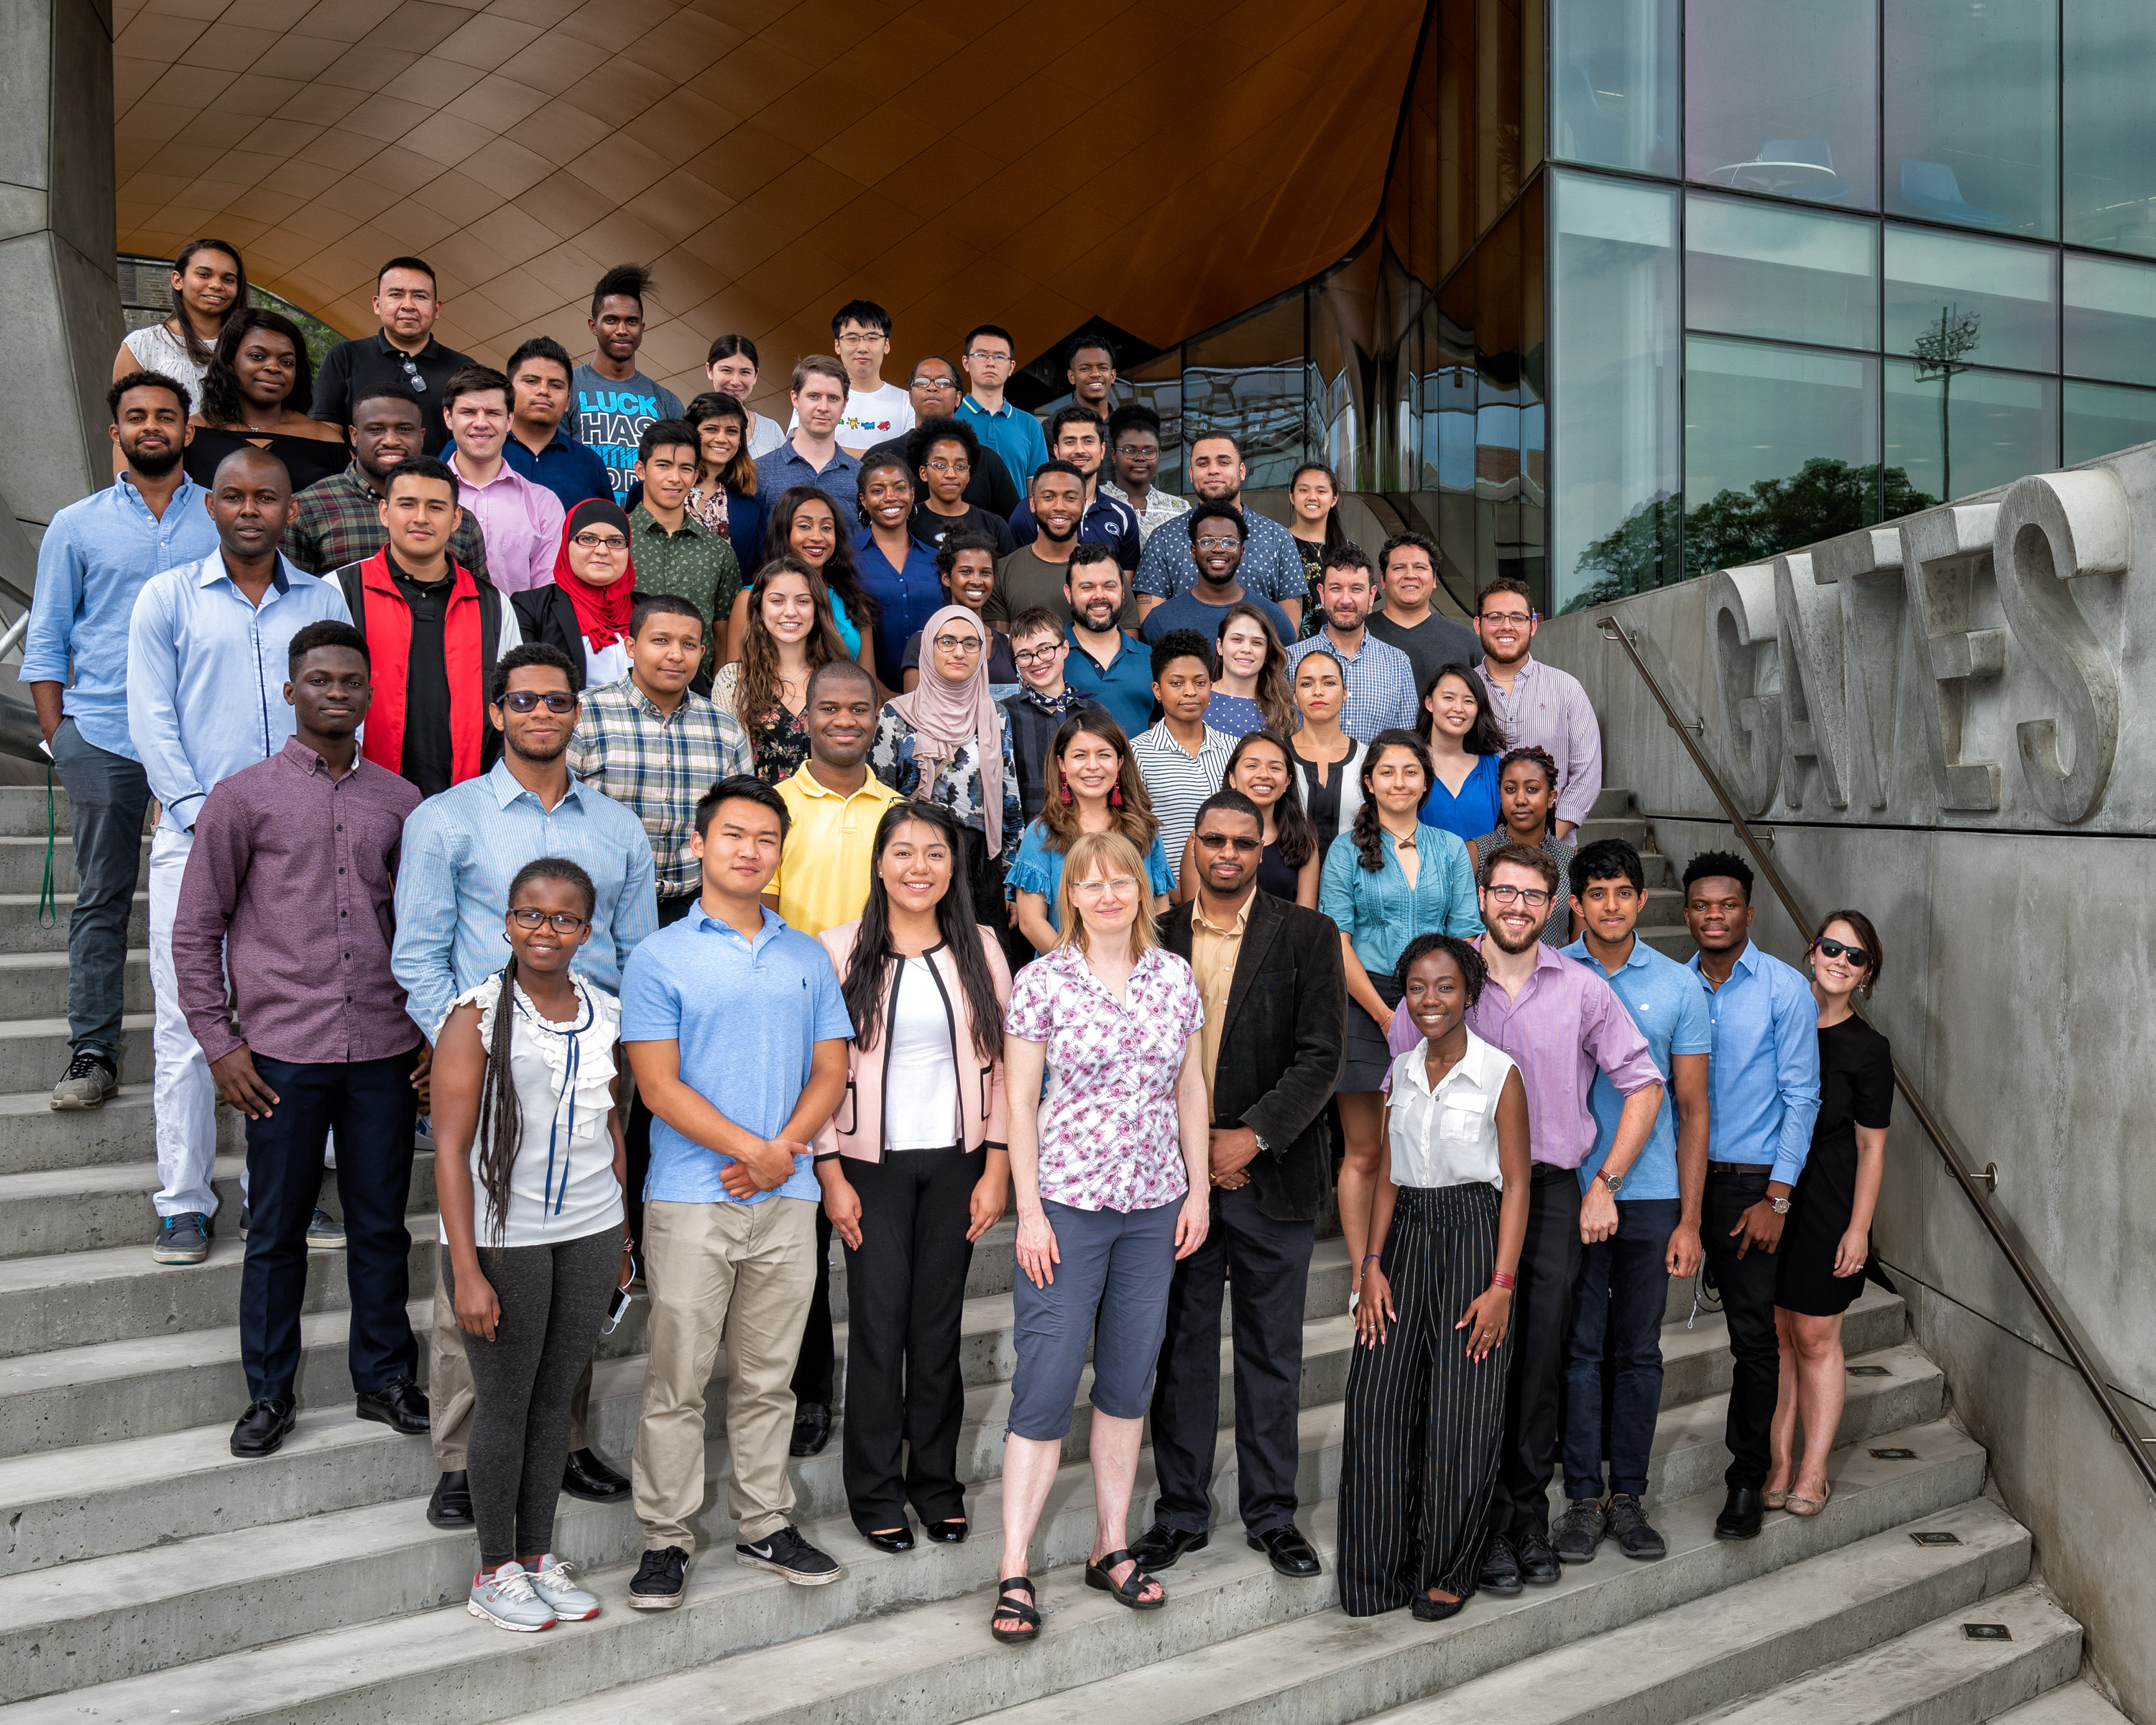 The 2018 cohort of students invited to Computing and Information Science's summer research programs, SONiC and Designing Technology for Social Impact.